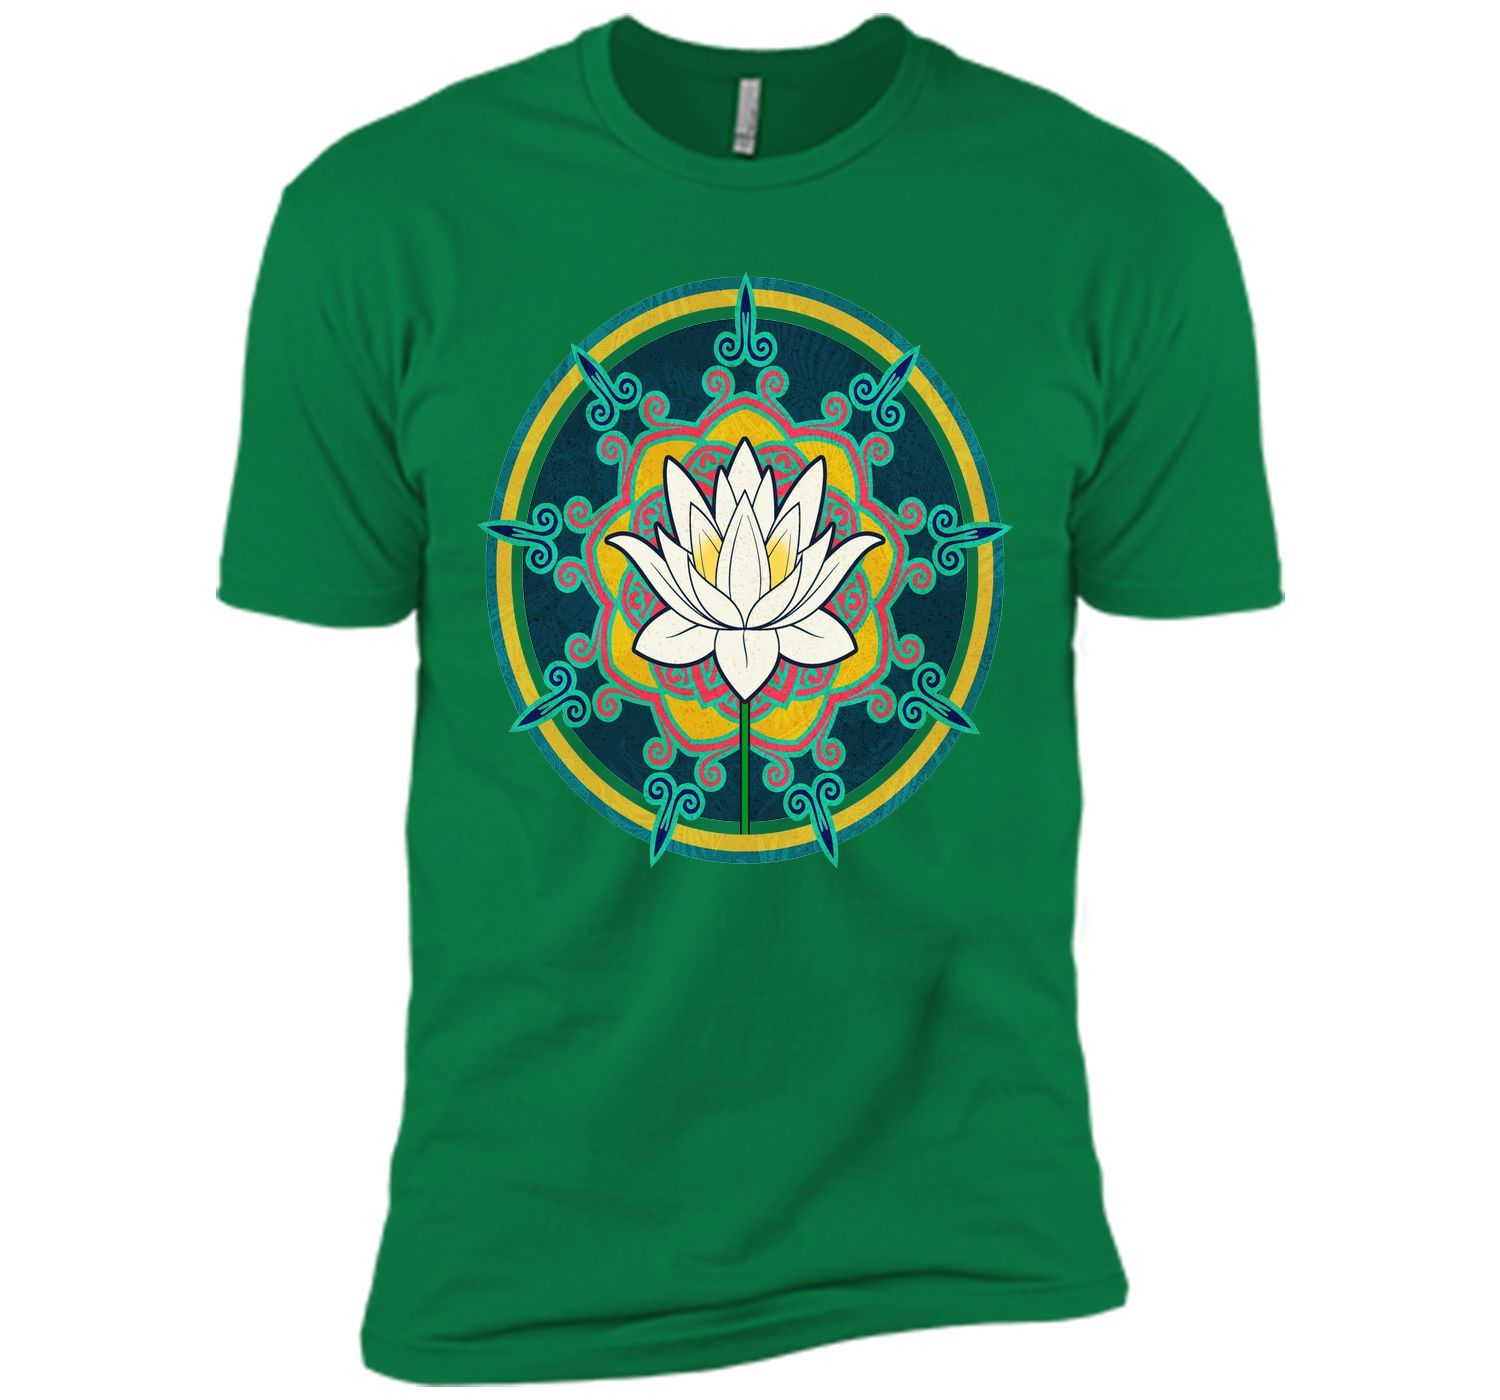 Amiable lotus flower 2017 t shirt products pinterest lotus amiable lotus flower 2017 t shirt izmirmasajfo Images